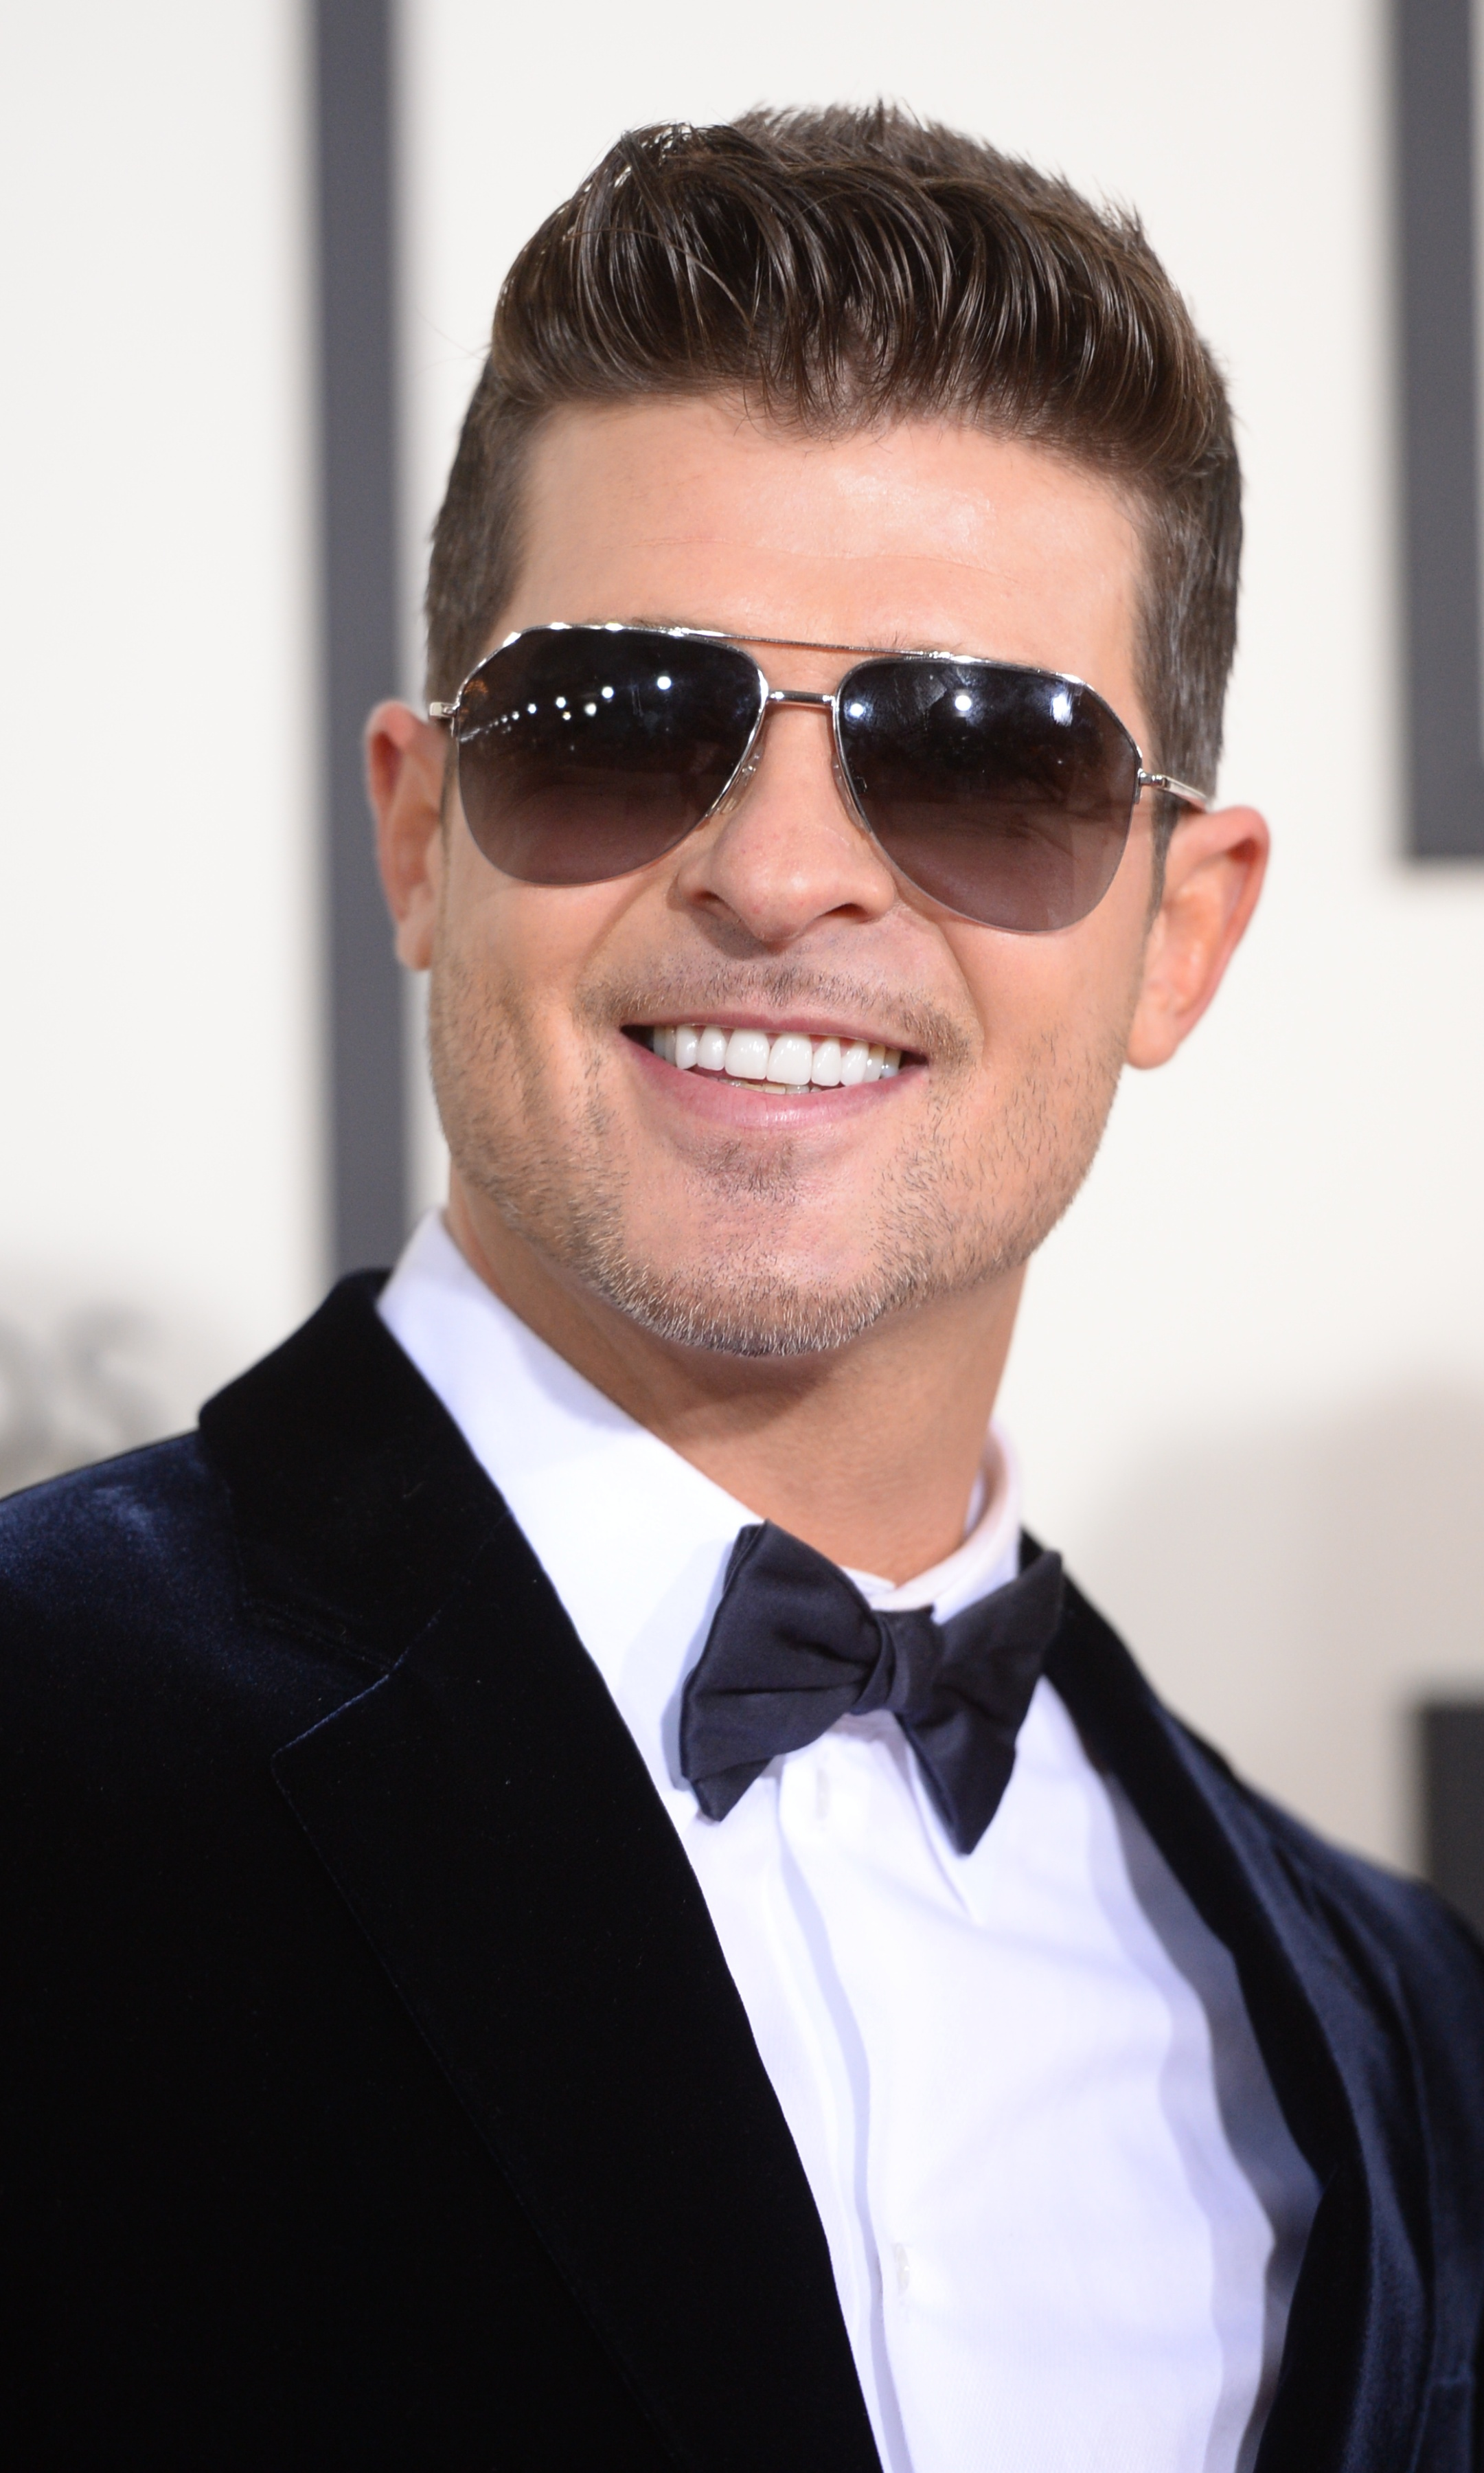 Robin Thicke arrives on the red carpet for the 56th Grammy Awards in Los Angeles on Jan. 26, 2014